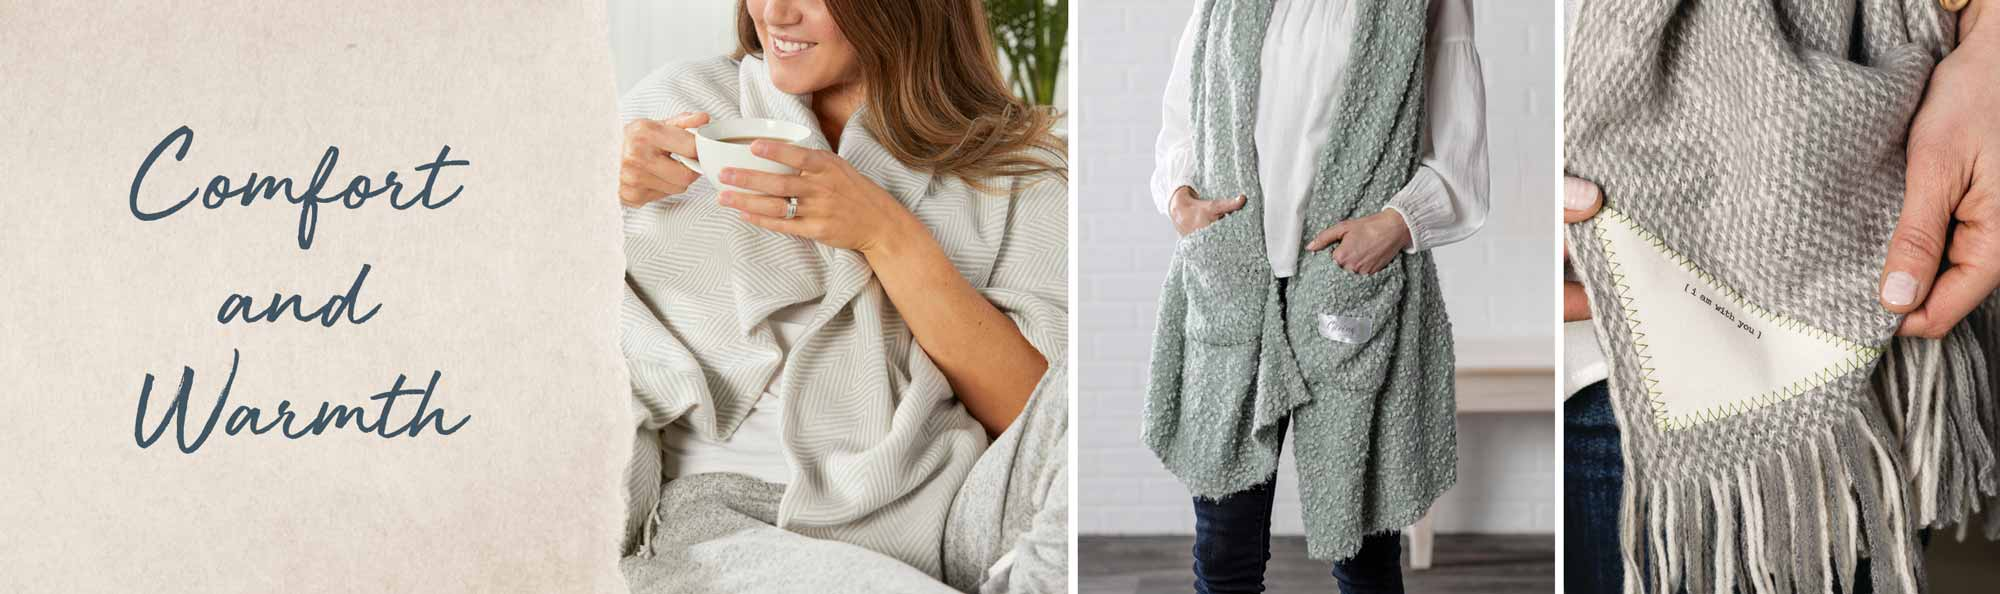 Women in soft, warm shawls and wraps - Comfort and Warmth